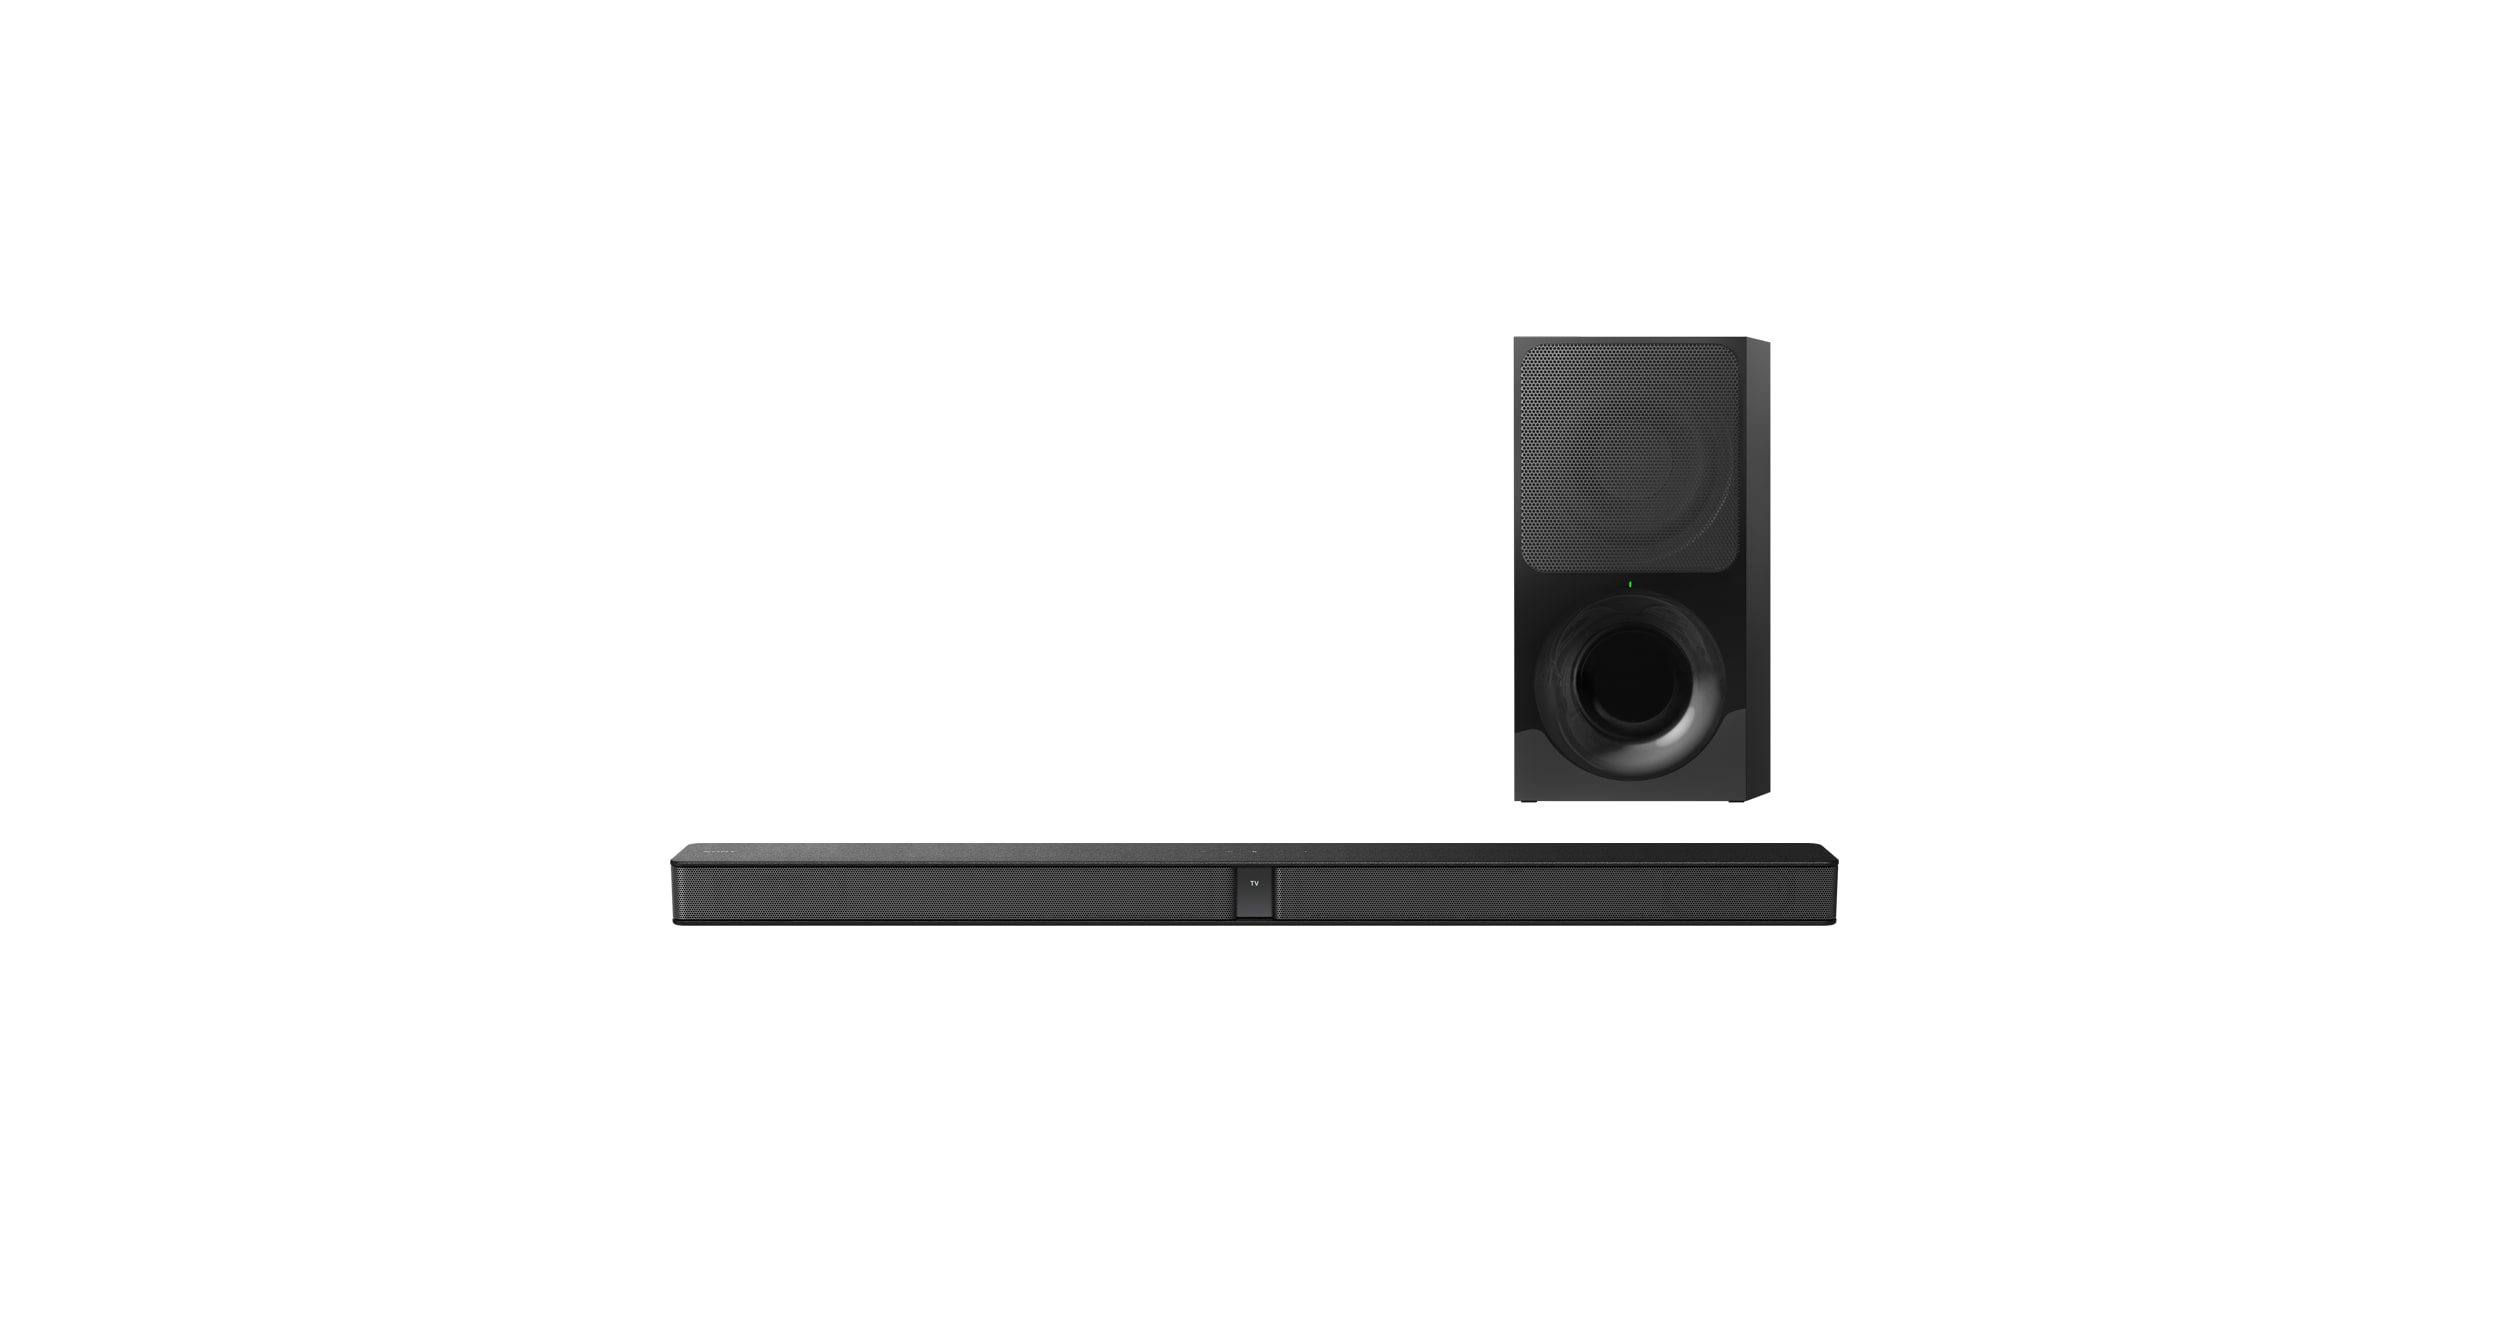 Ht Ct290 21ch Soundbar With Bluetooth Sony Us Using Cellular Phone And Bt Serial Electronic Design